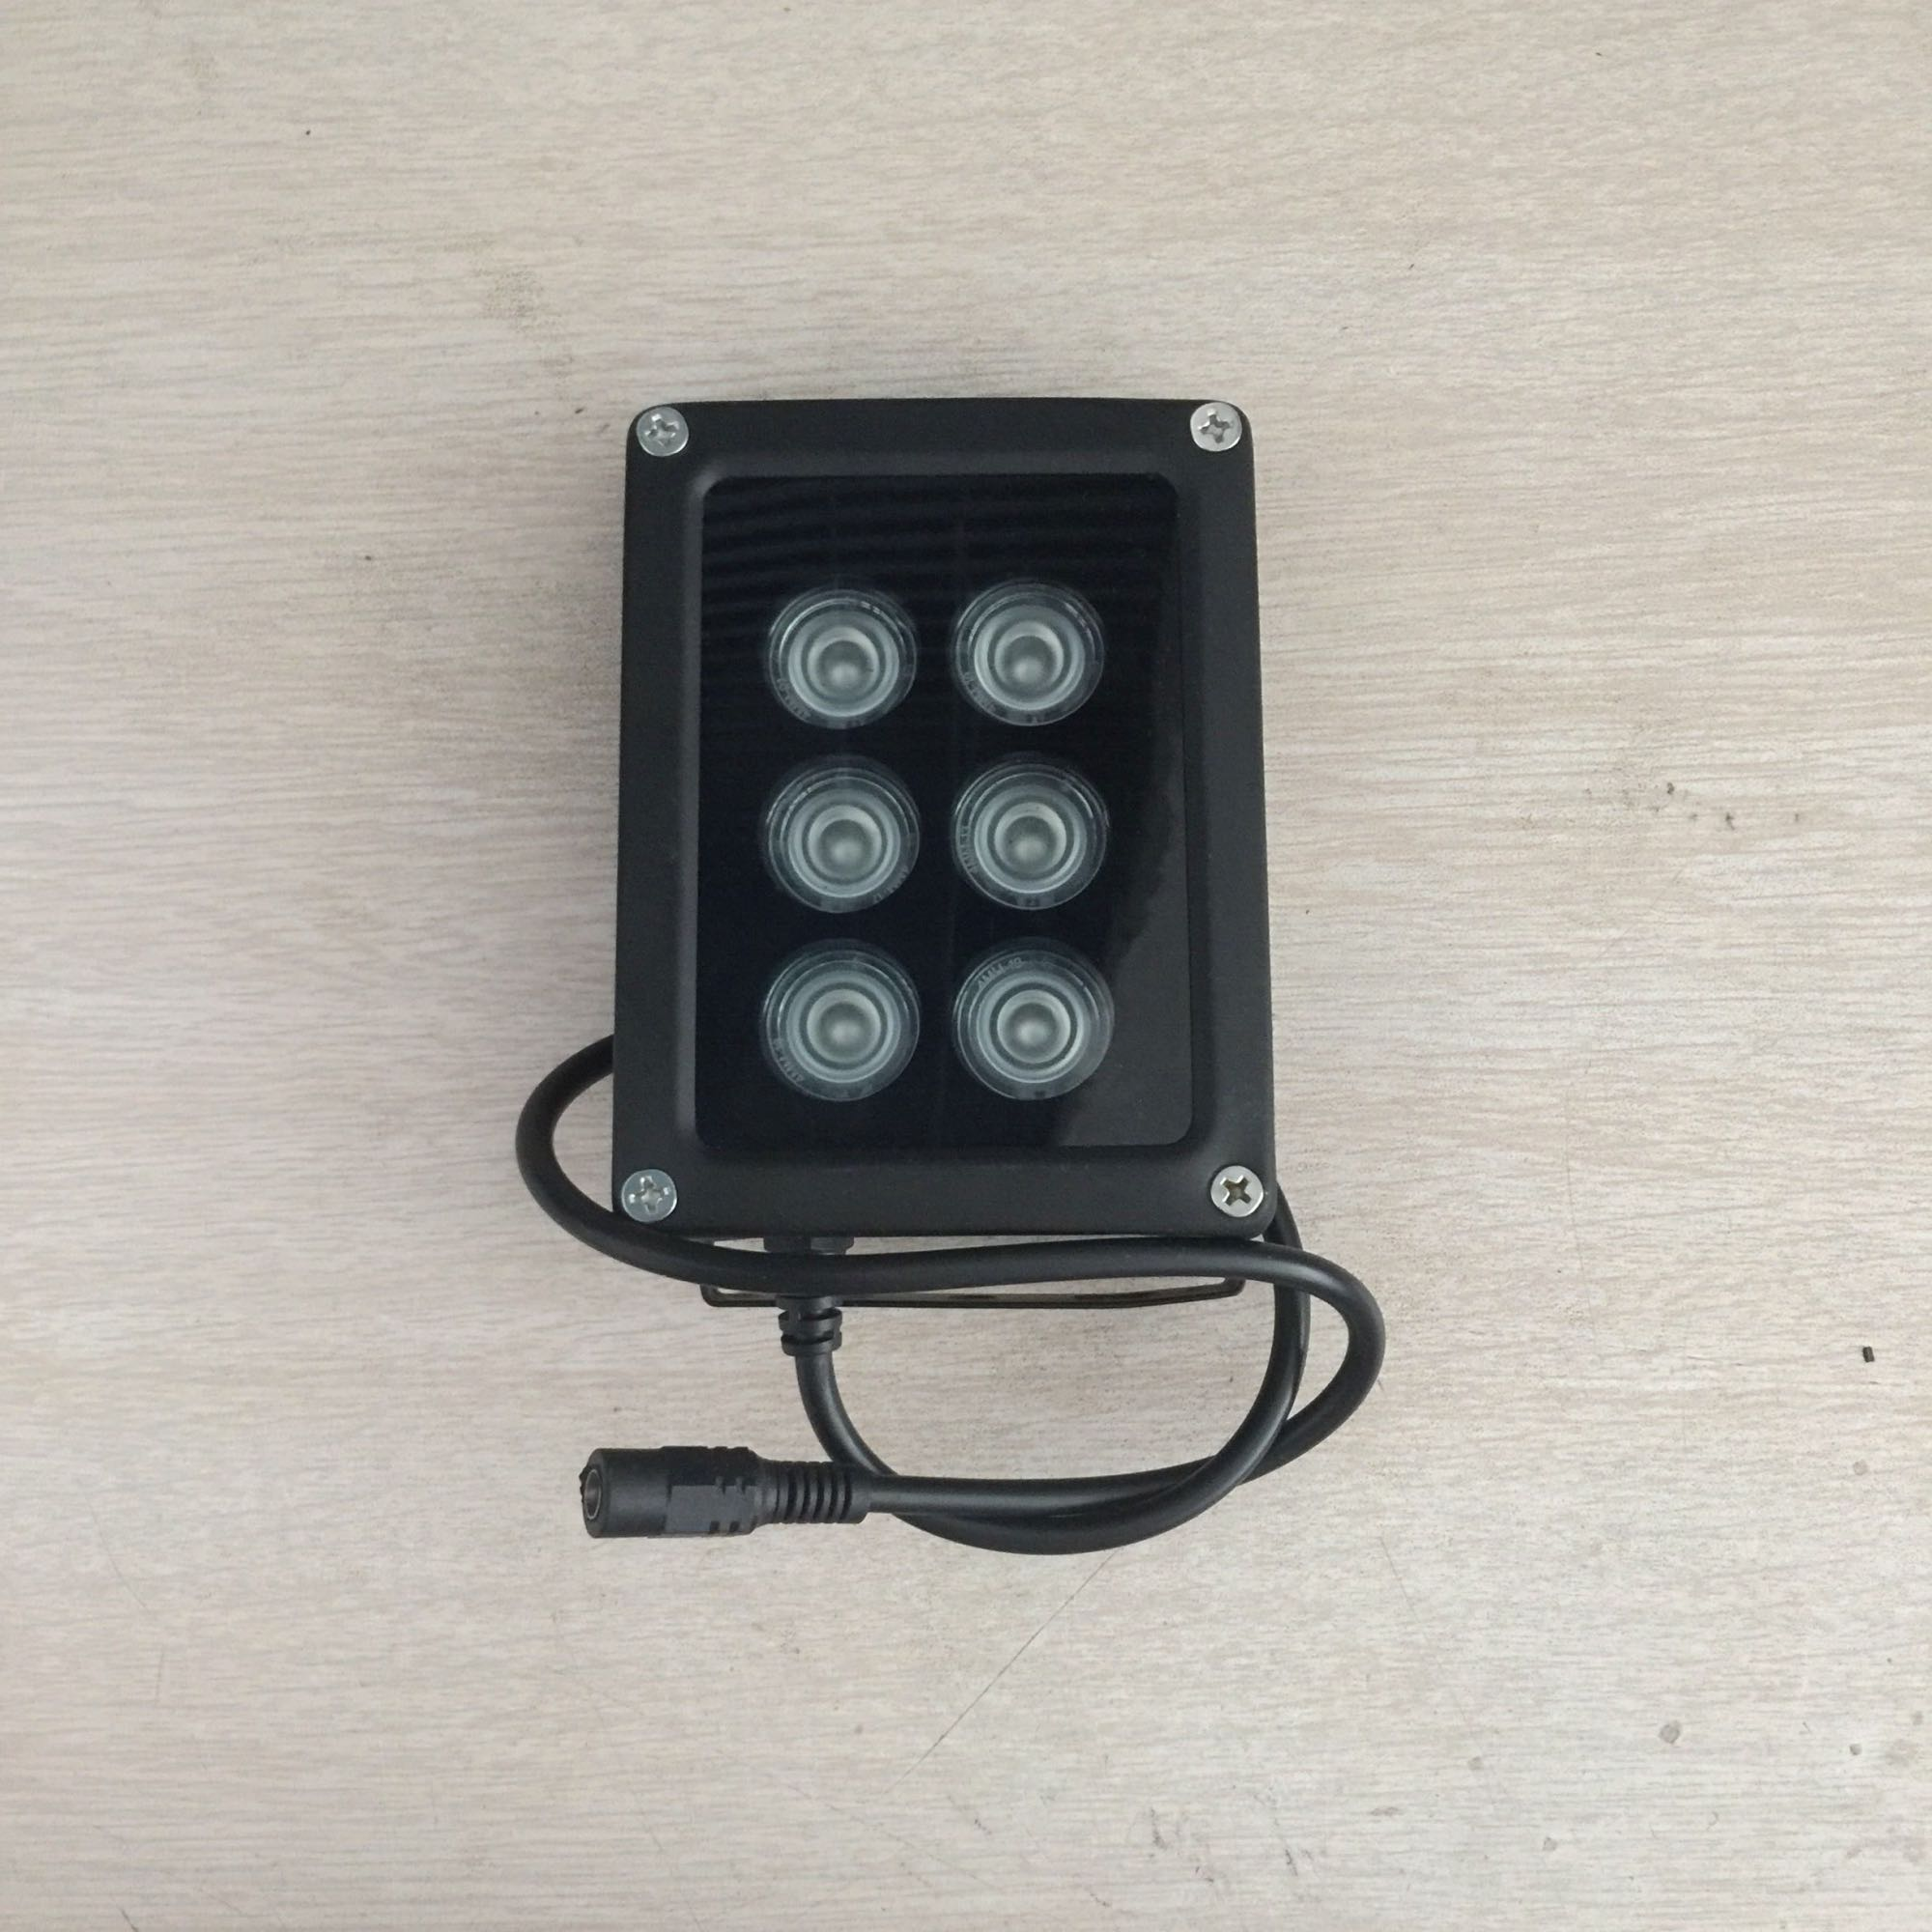 CCTV IR Light IR Spotlight infrared Light 6 LED high power Array 850nm IR For CCTV camera fill light IR illuminator ir illuminator 48led dc12v 850nm white